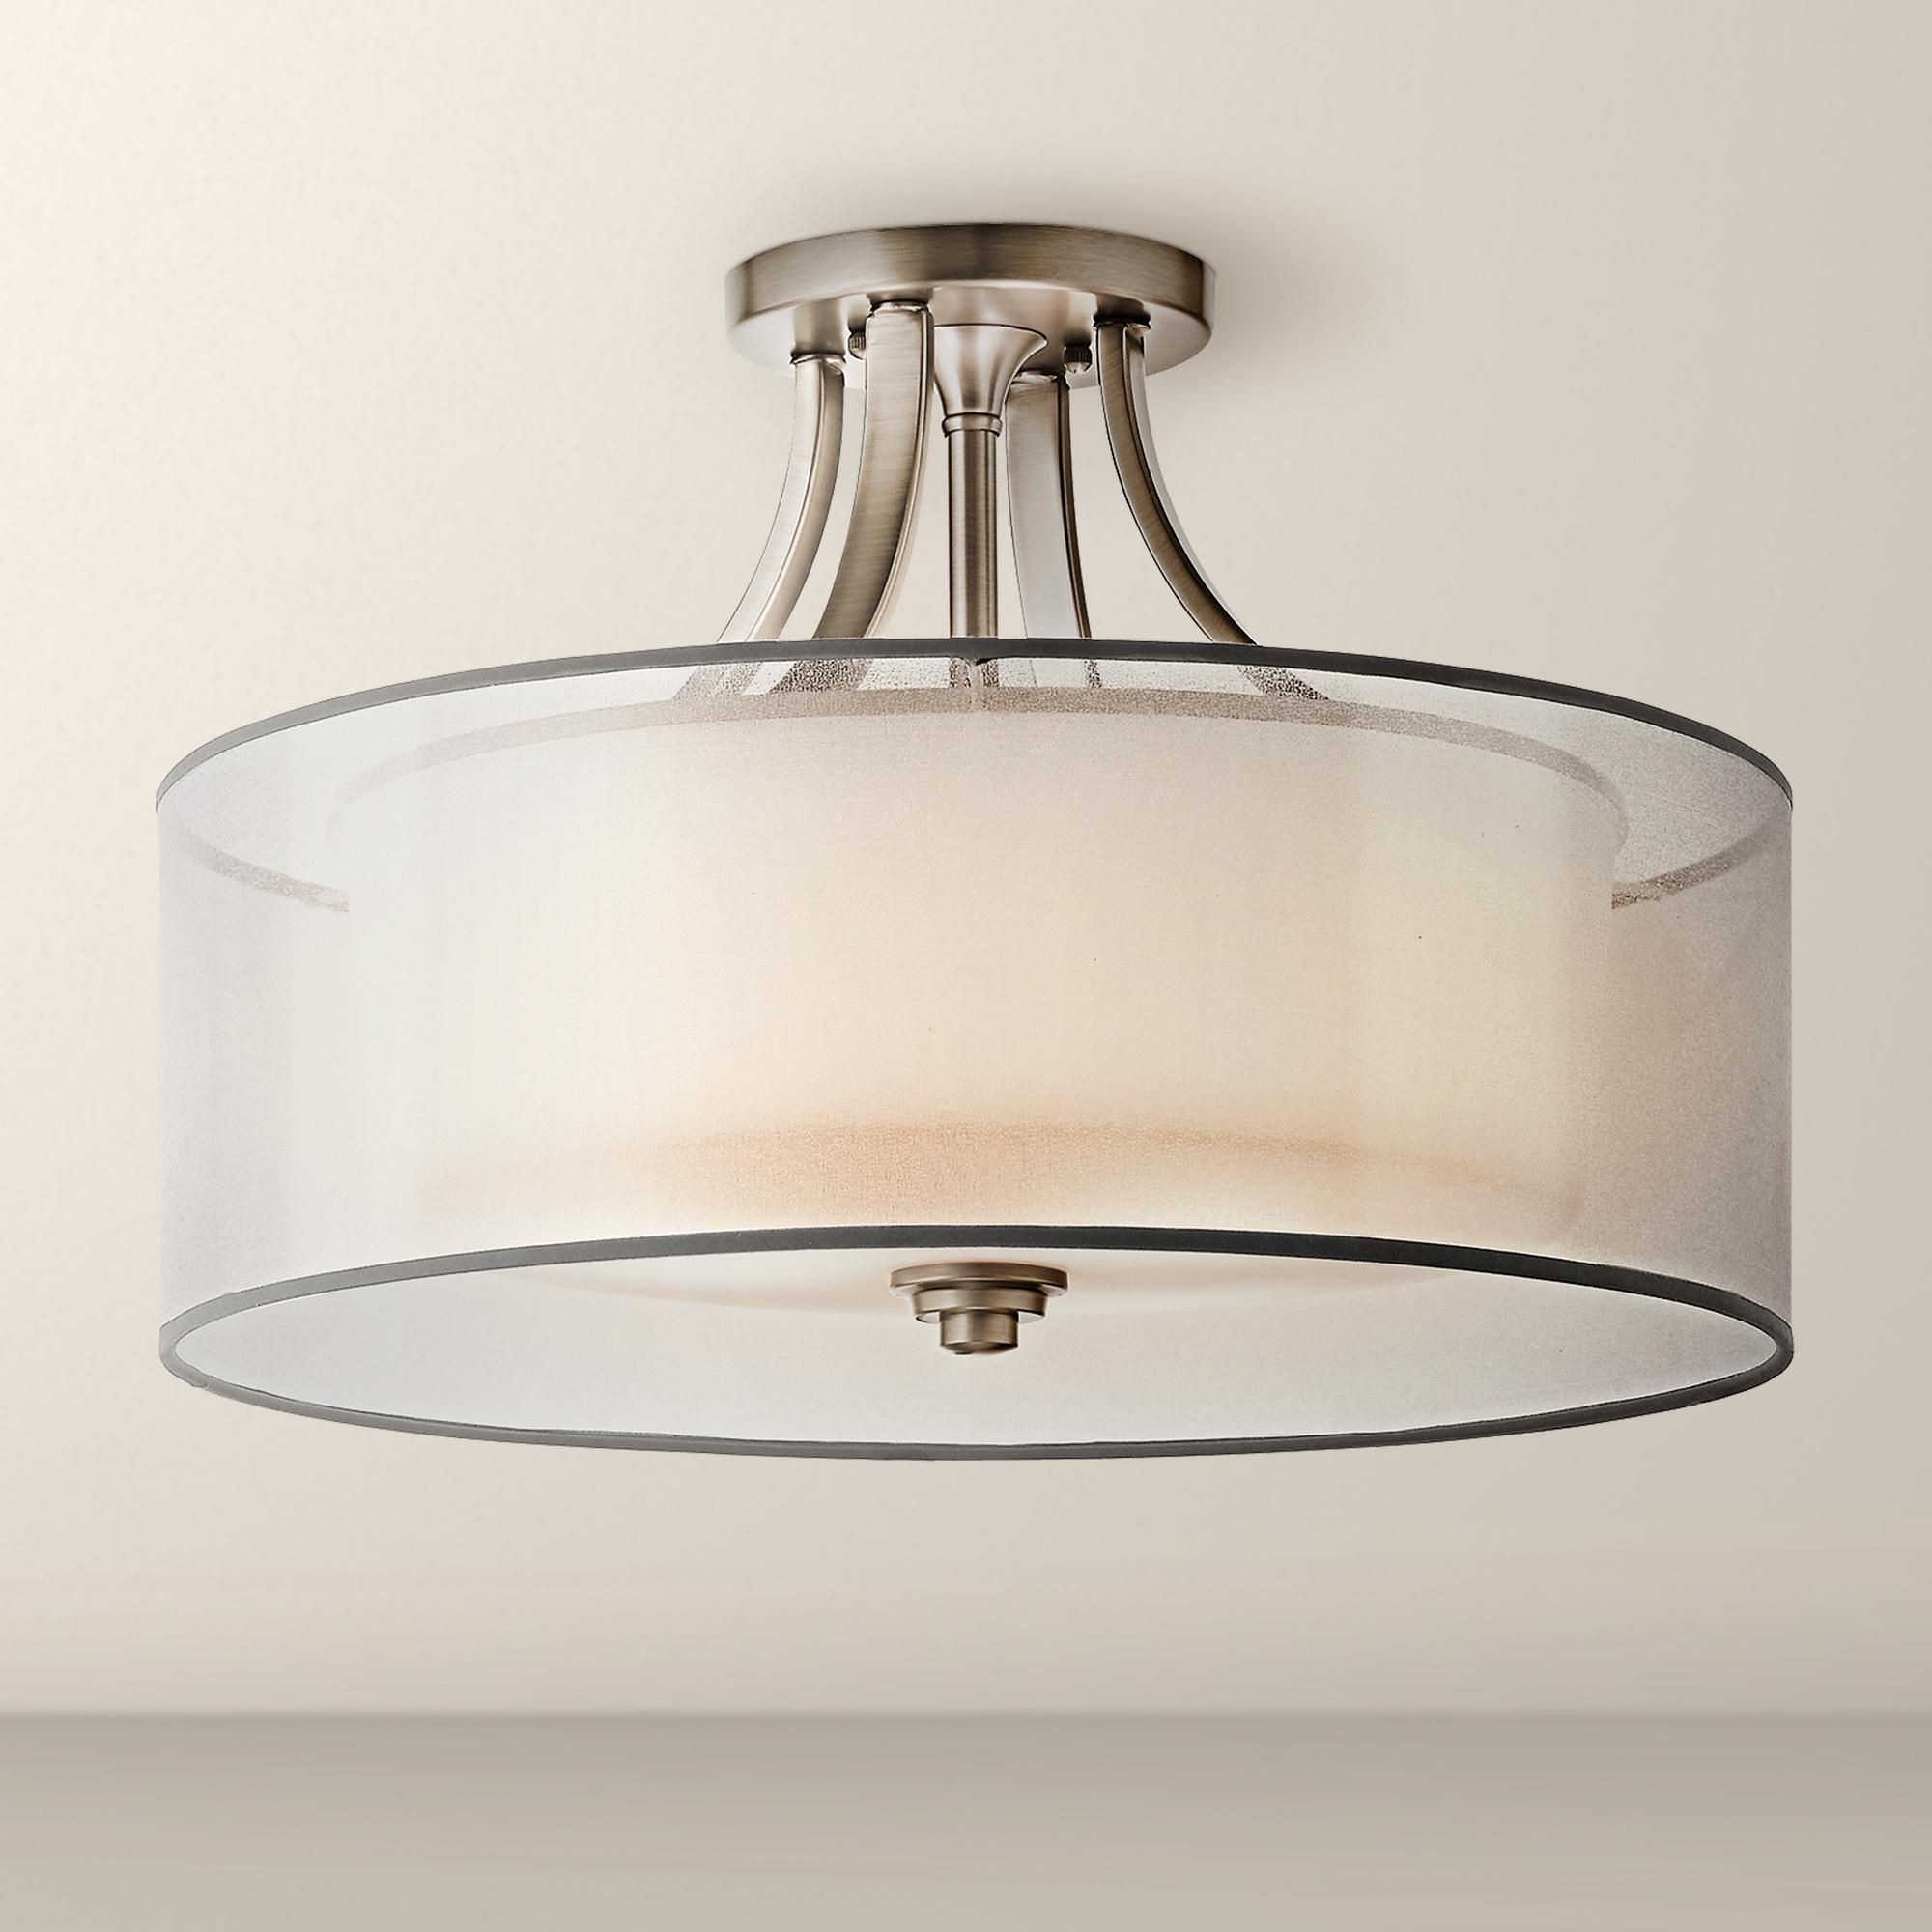 Kichler lacey 20 wide antique pewter ceiling light fixture kichler lacey 20 wide antique pewter ceiling light fixture arubaitofo Image collections